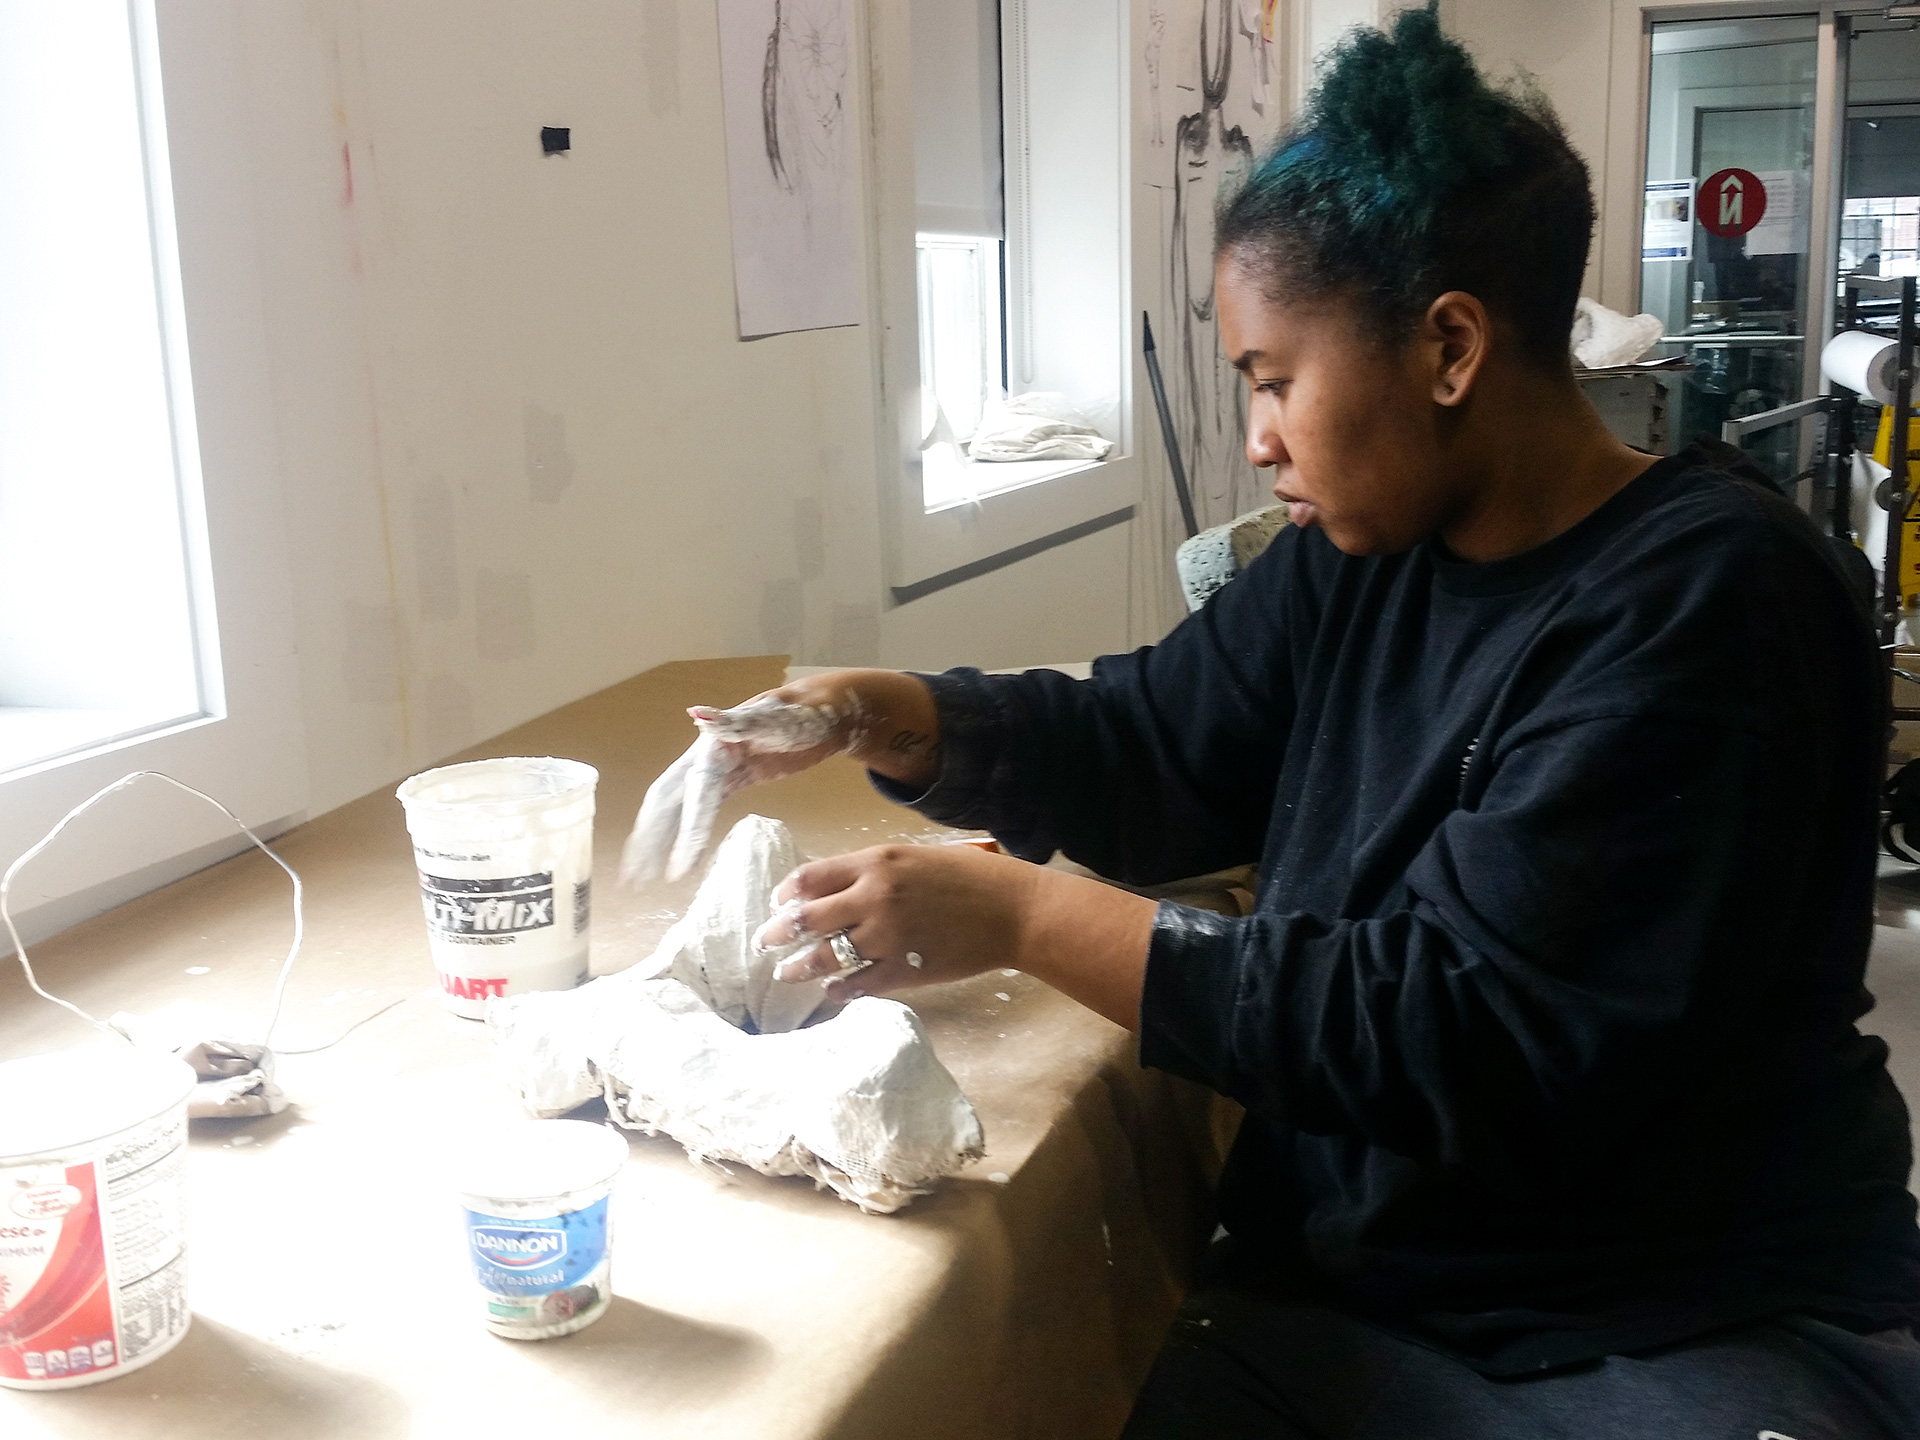 Student works with plaster in studio classroom